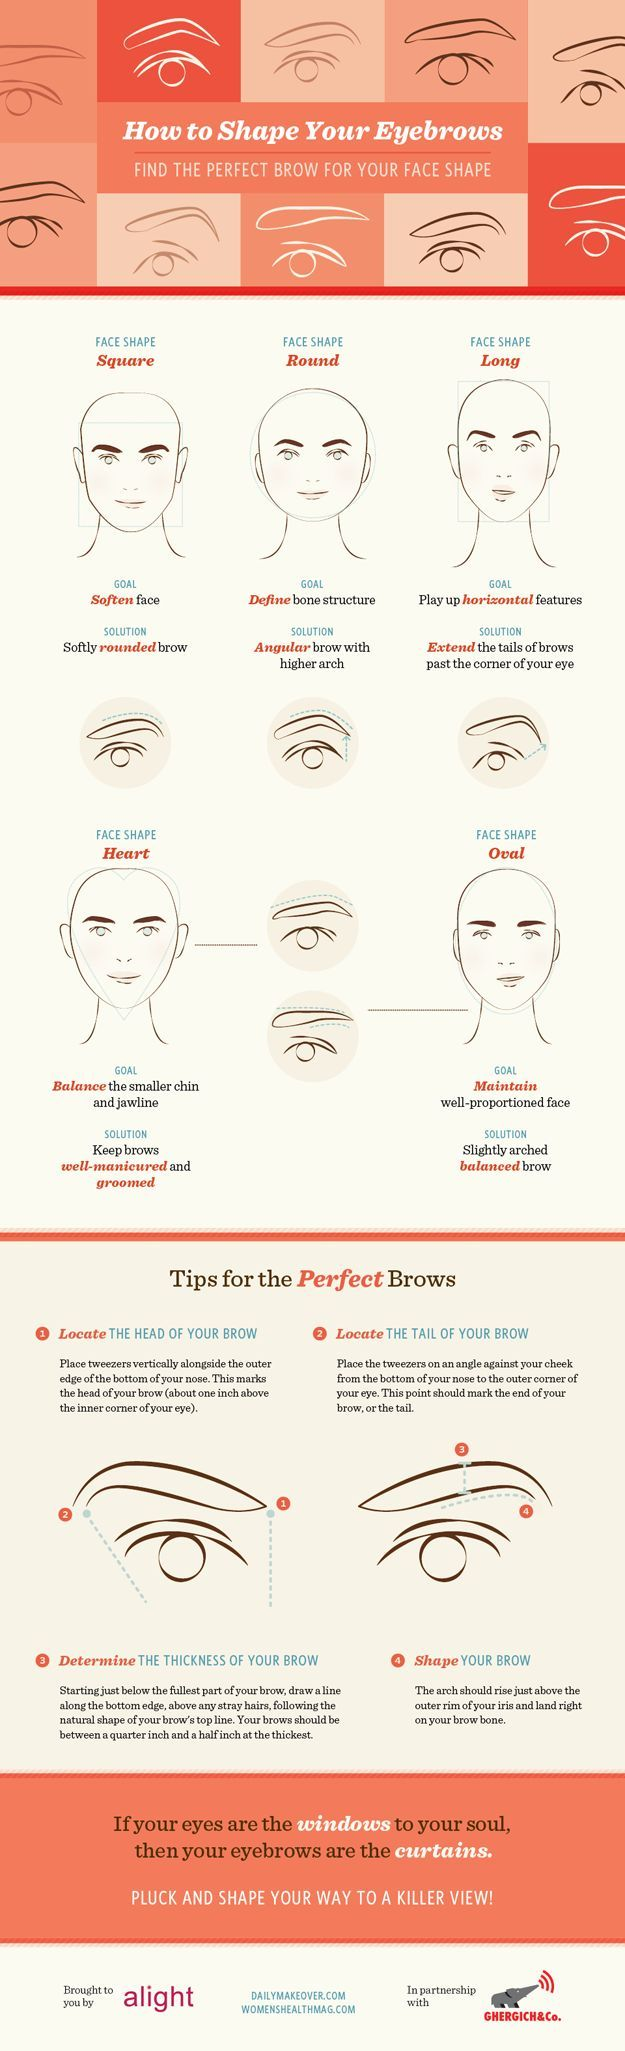 Eyebrow Tutorial: Finding The Right Brow Shape For Your Face | Beauty Tips And T...